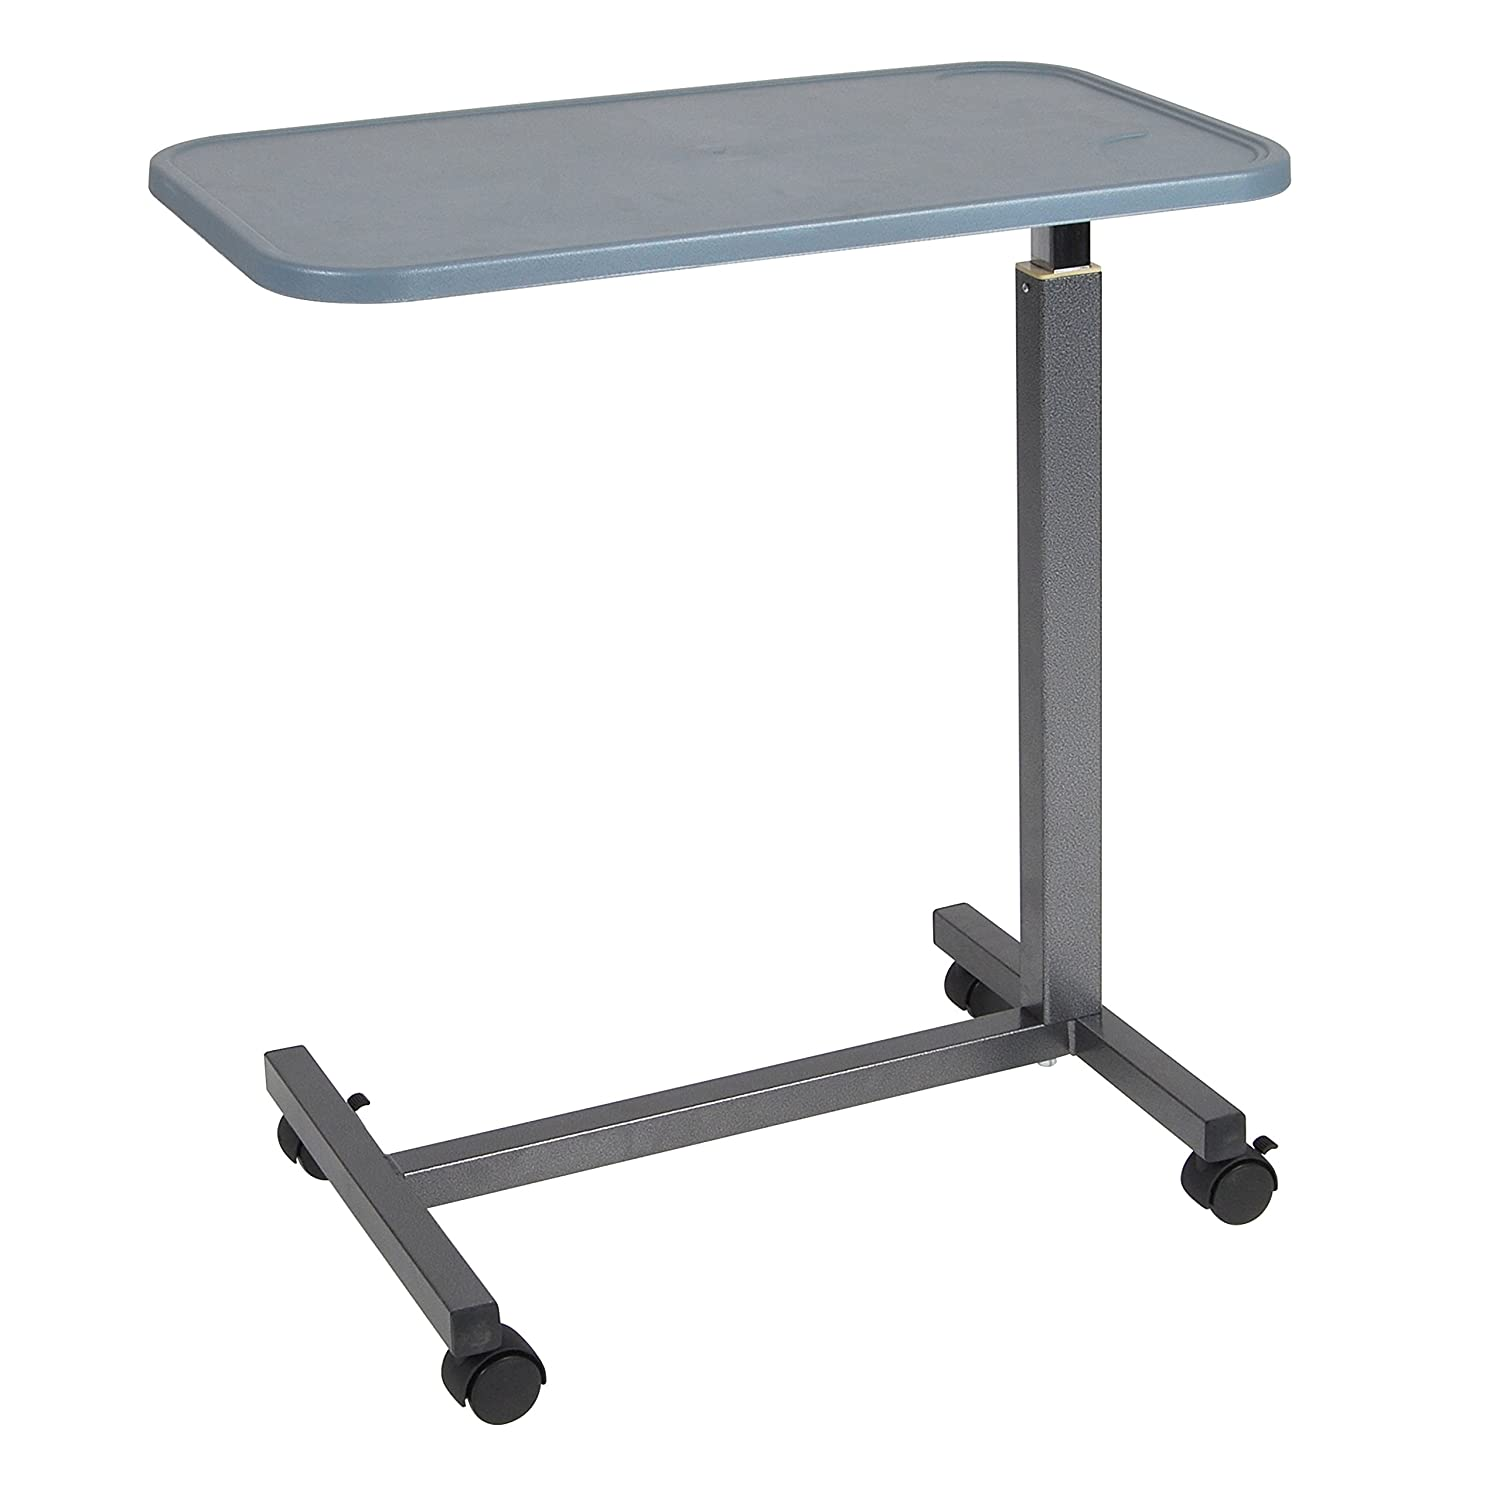 Diy overbed table - Drive Medical Overbed Table With Plastic Top Silver